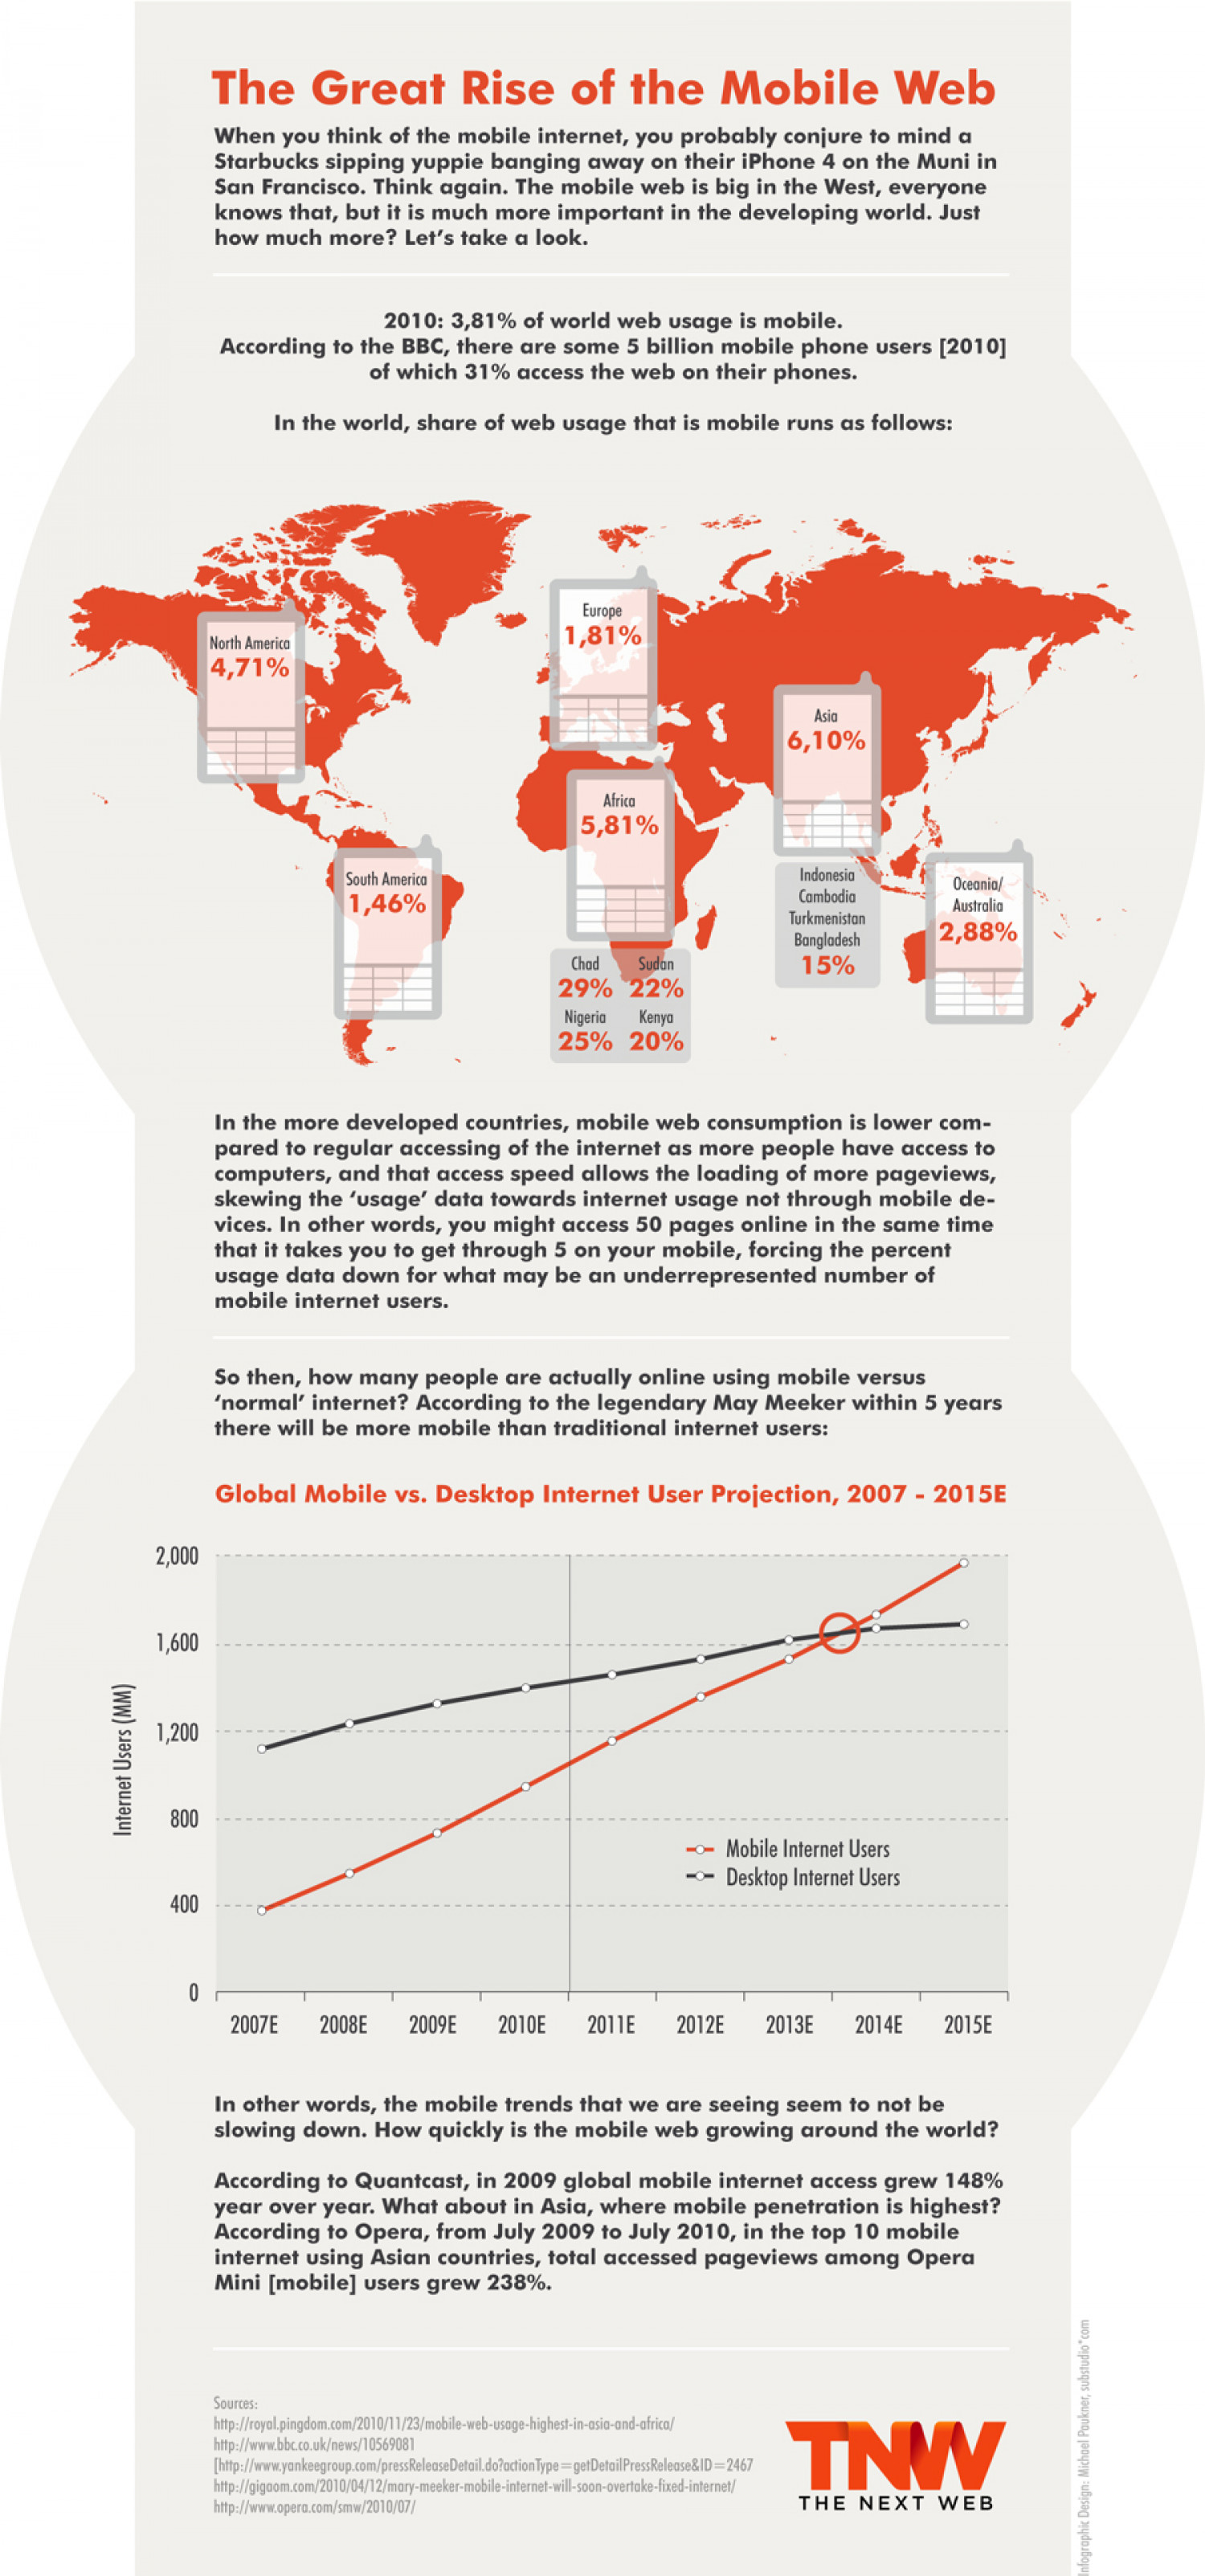 The Mobile Web in the Rest of the World Infographic